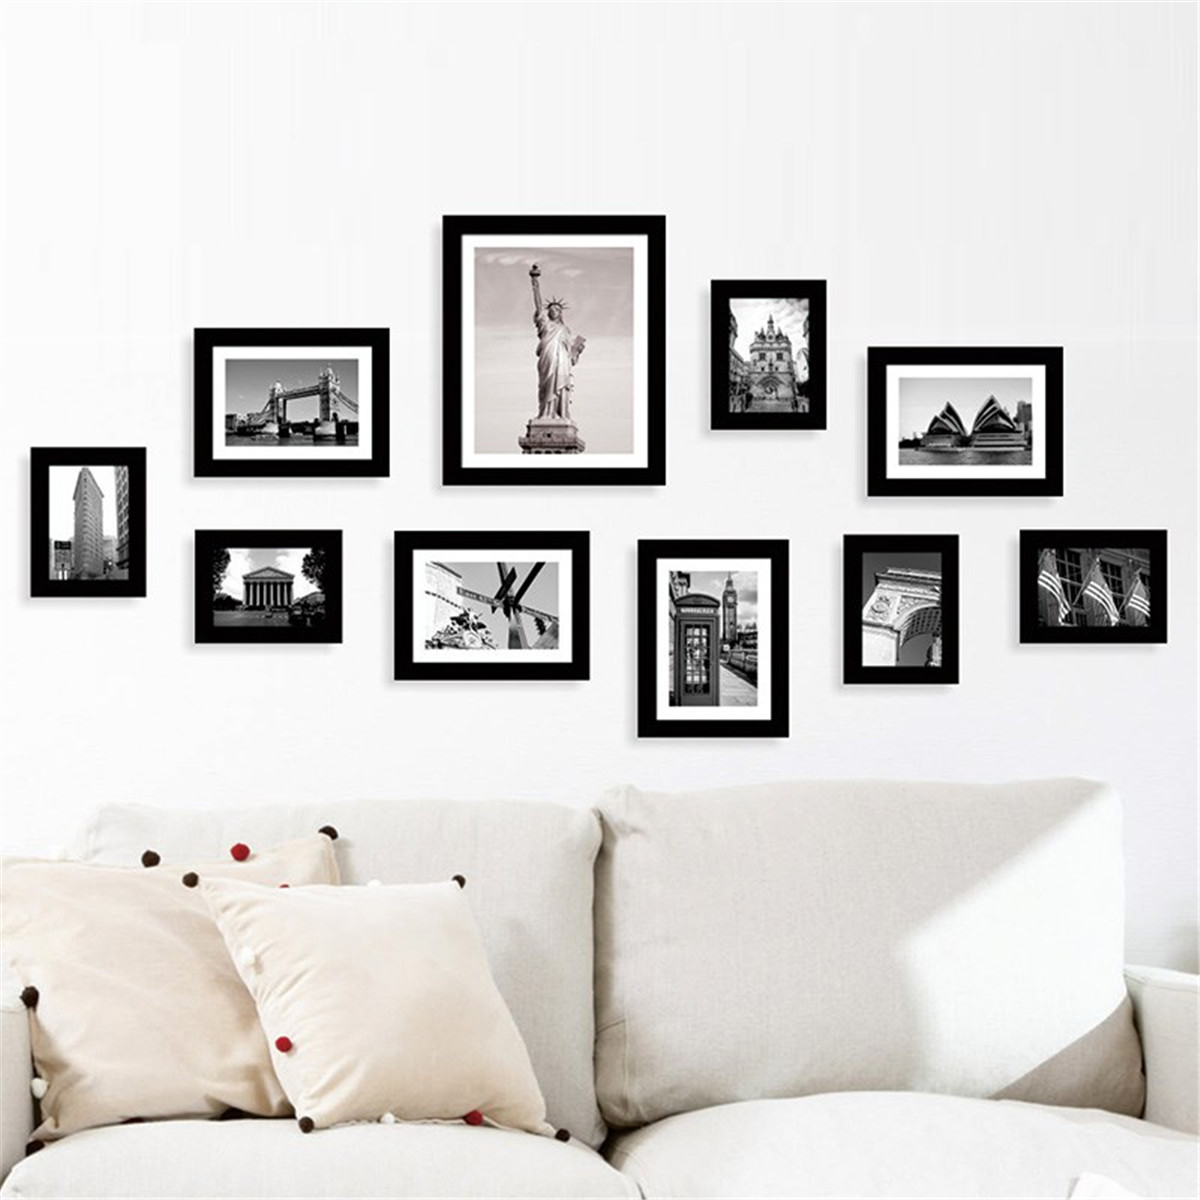 multi photo frames set home room office decor picture collage wall art gift diy ebay. Black Bedroom Furniture Sets. Home Design Ideas